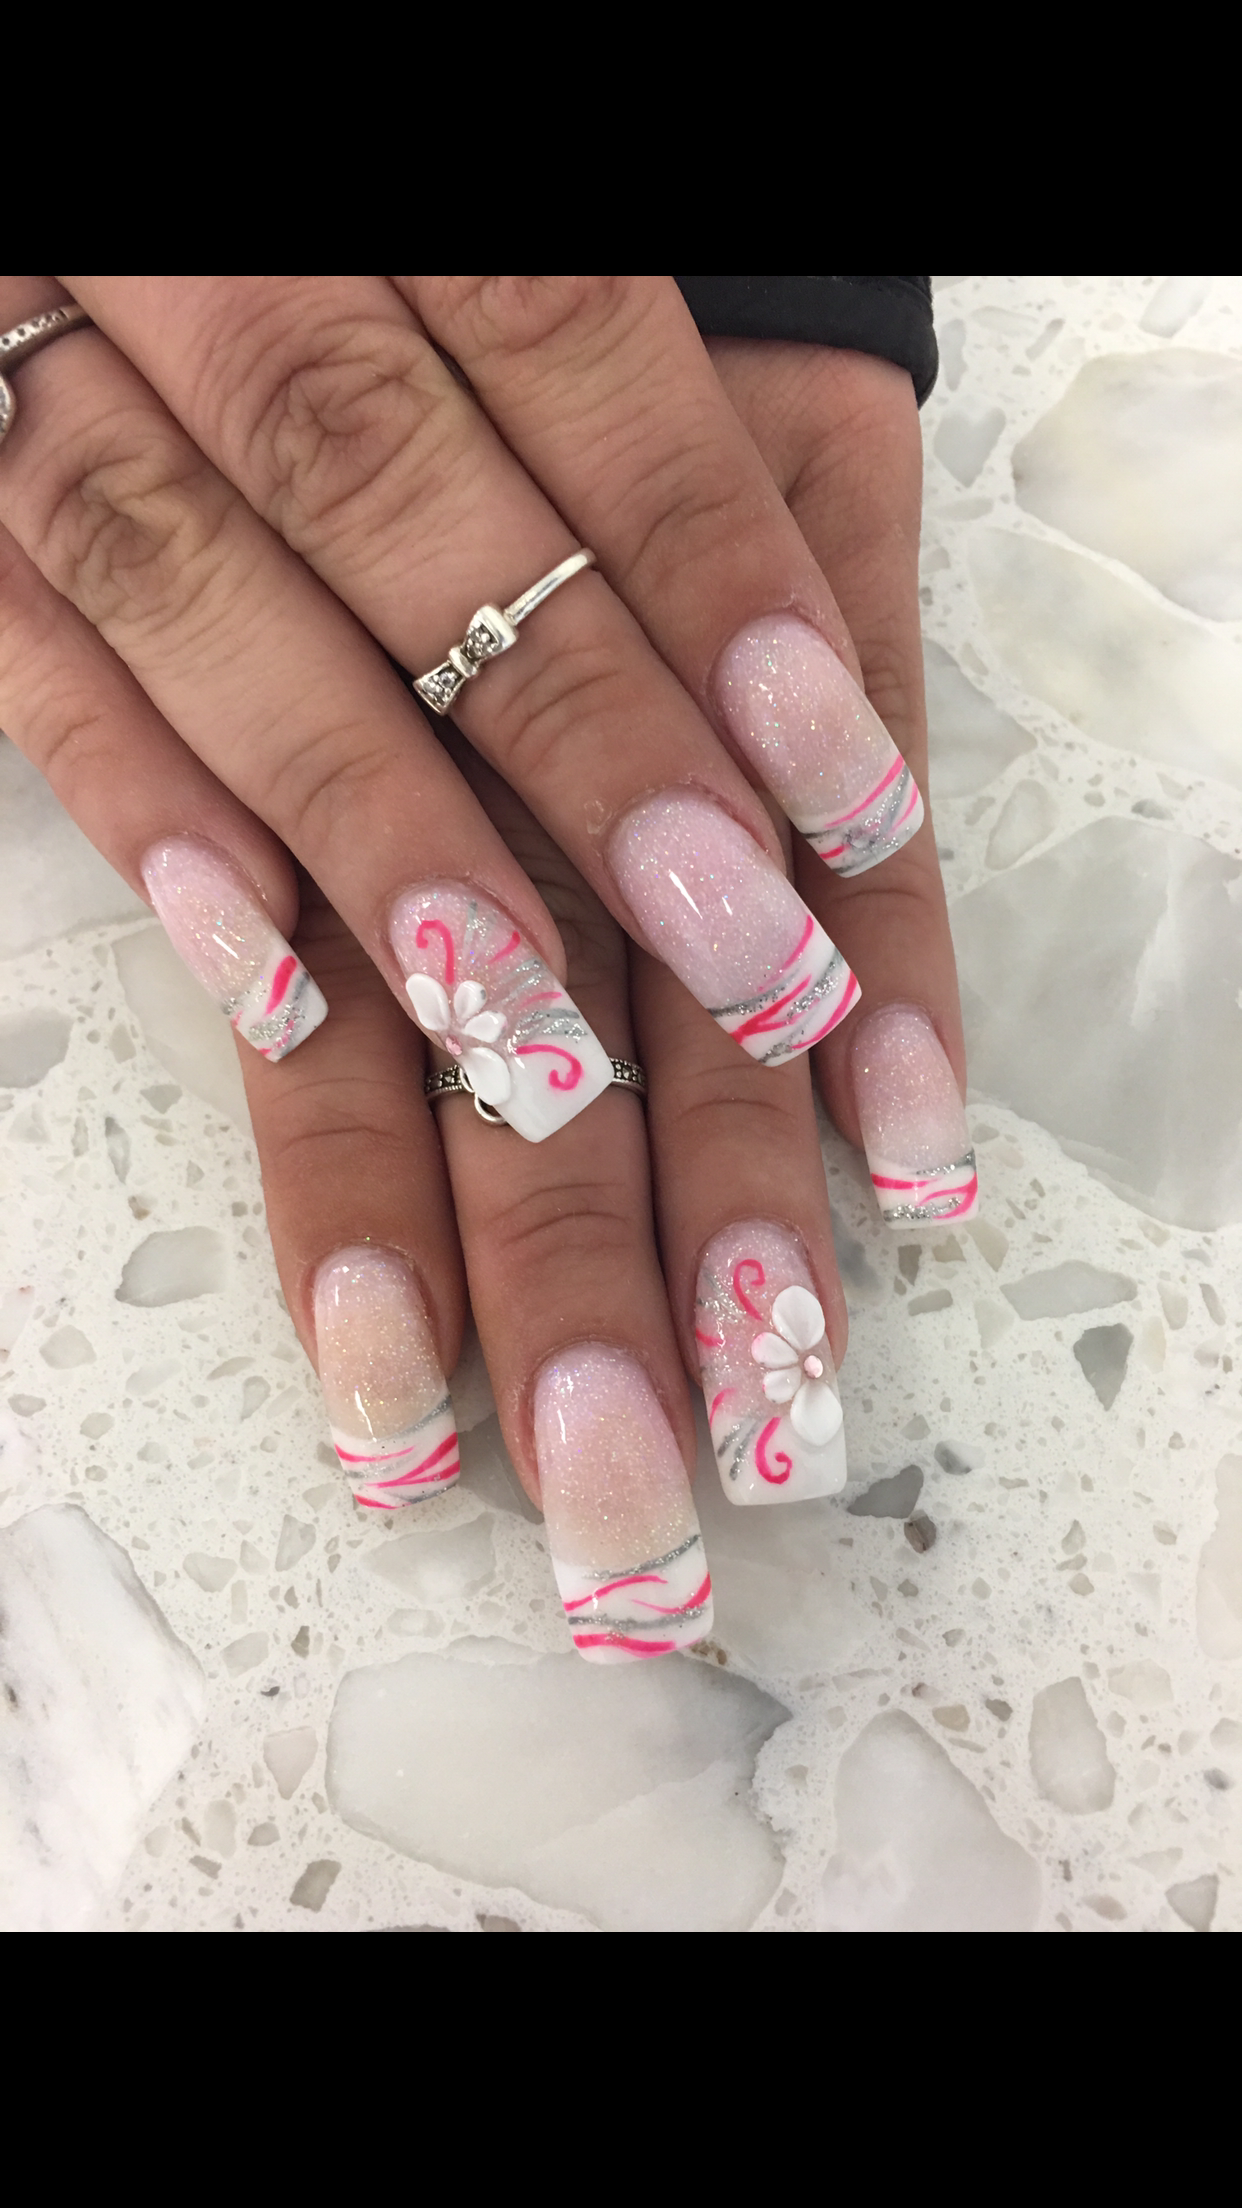 Pink and White 3D Flower Zebra Glitter ANC Nail Design Nail Art Nails - Pink And White 3D Flower Zebra Glitter ANC Nail Design Nail Art